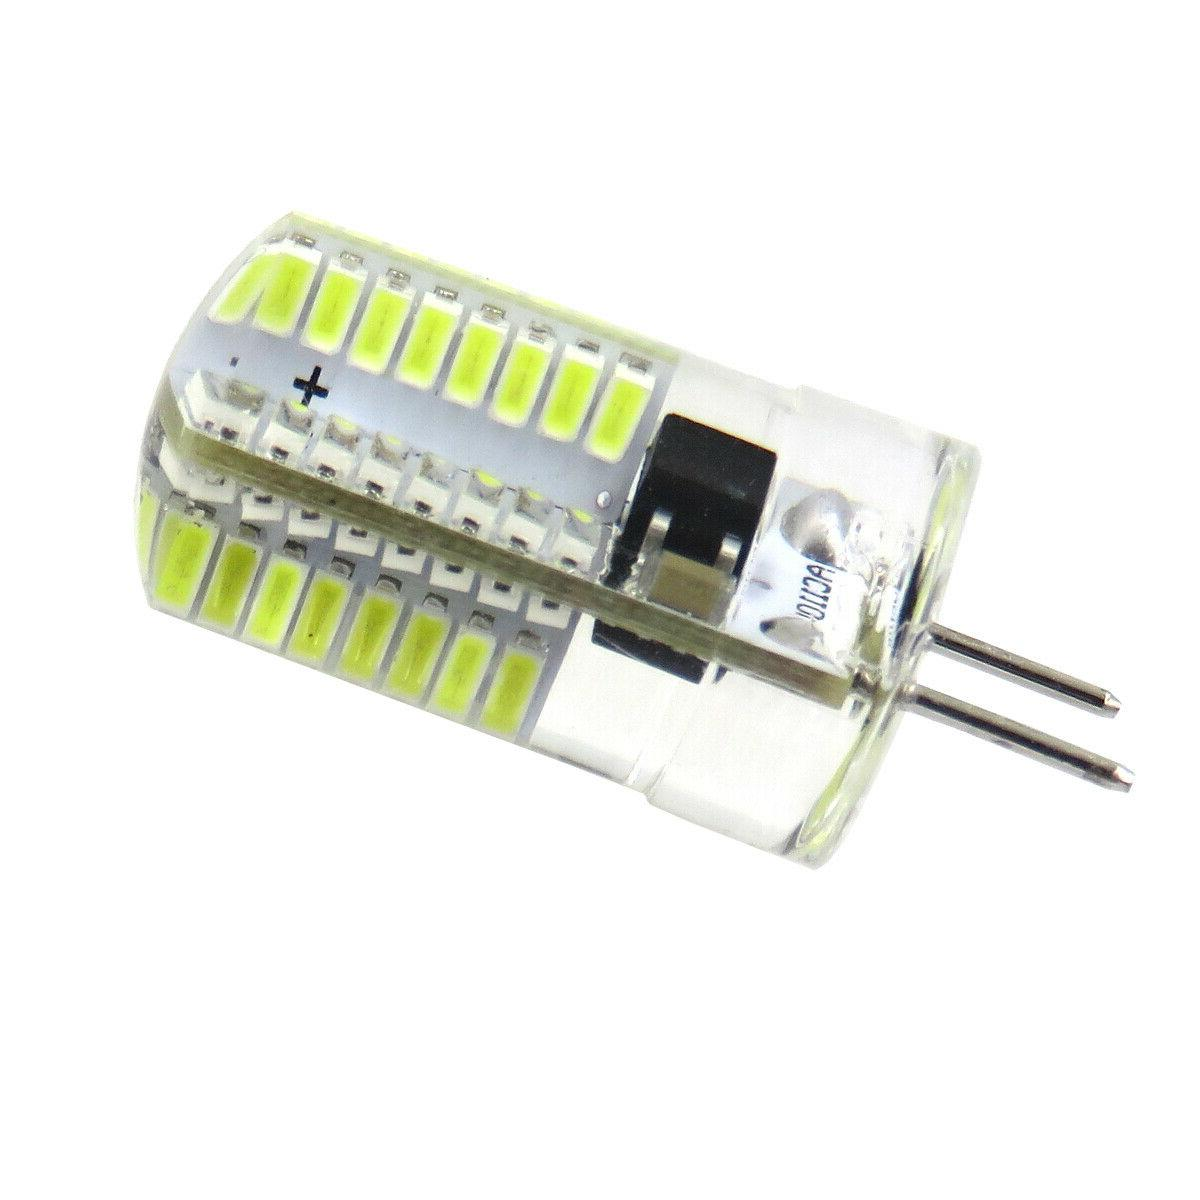 10pcs Lights 3014 Light White/Warm 120V